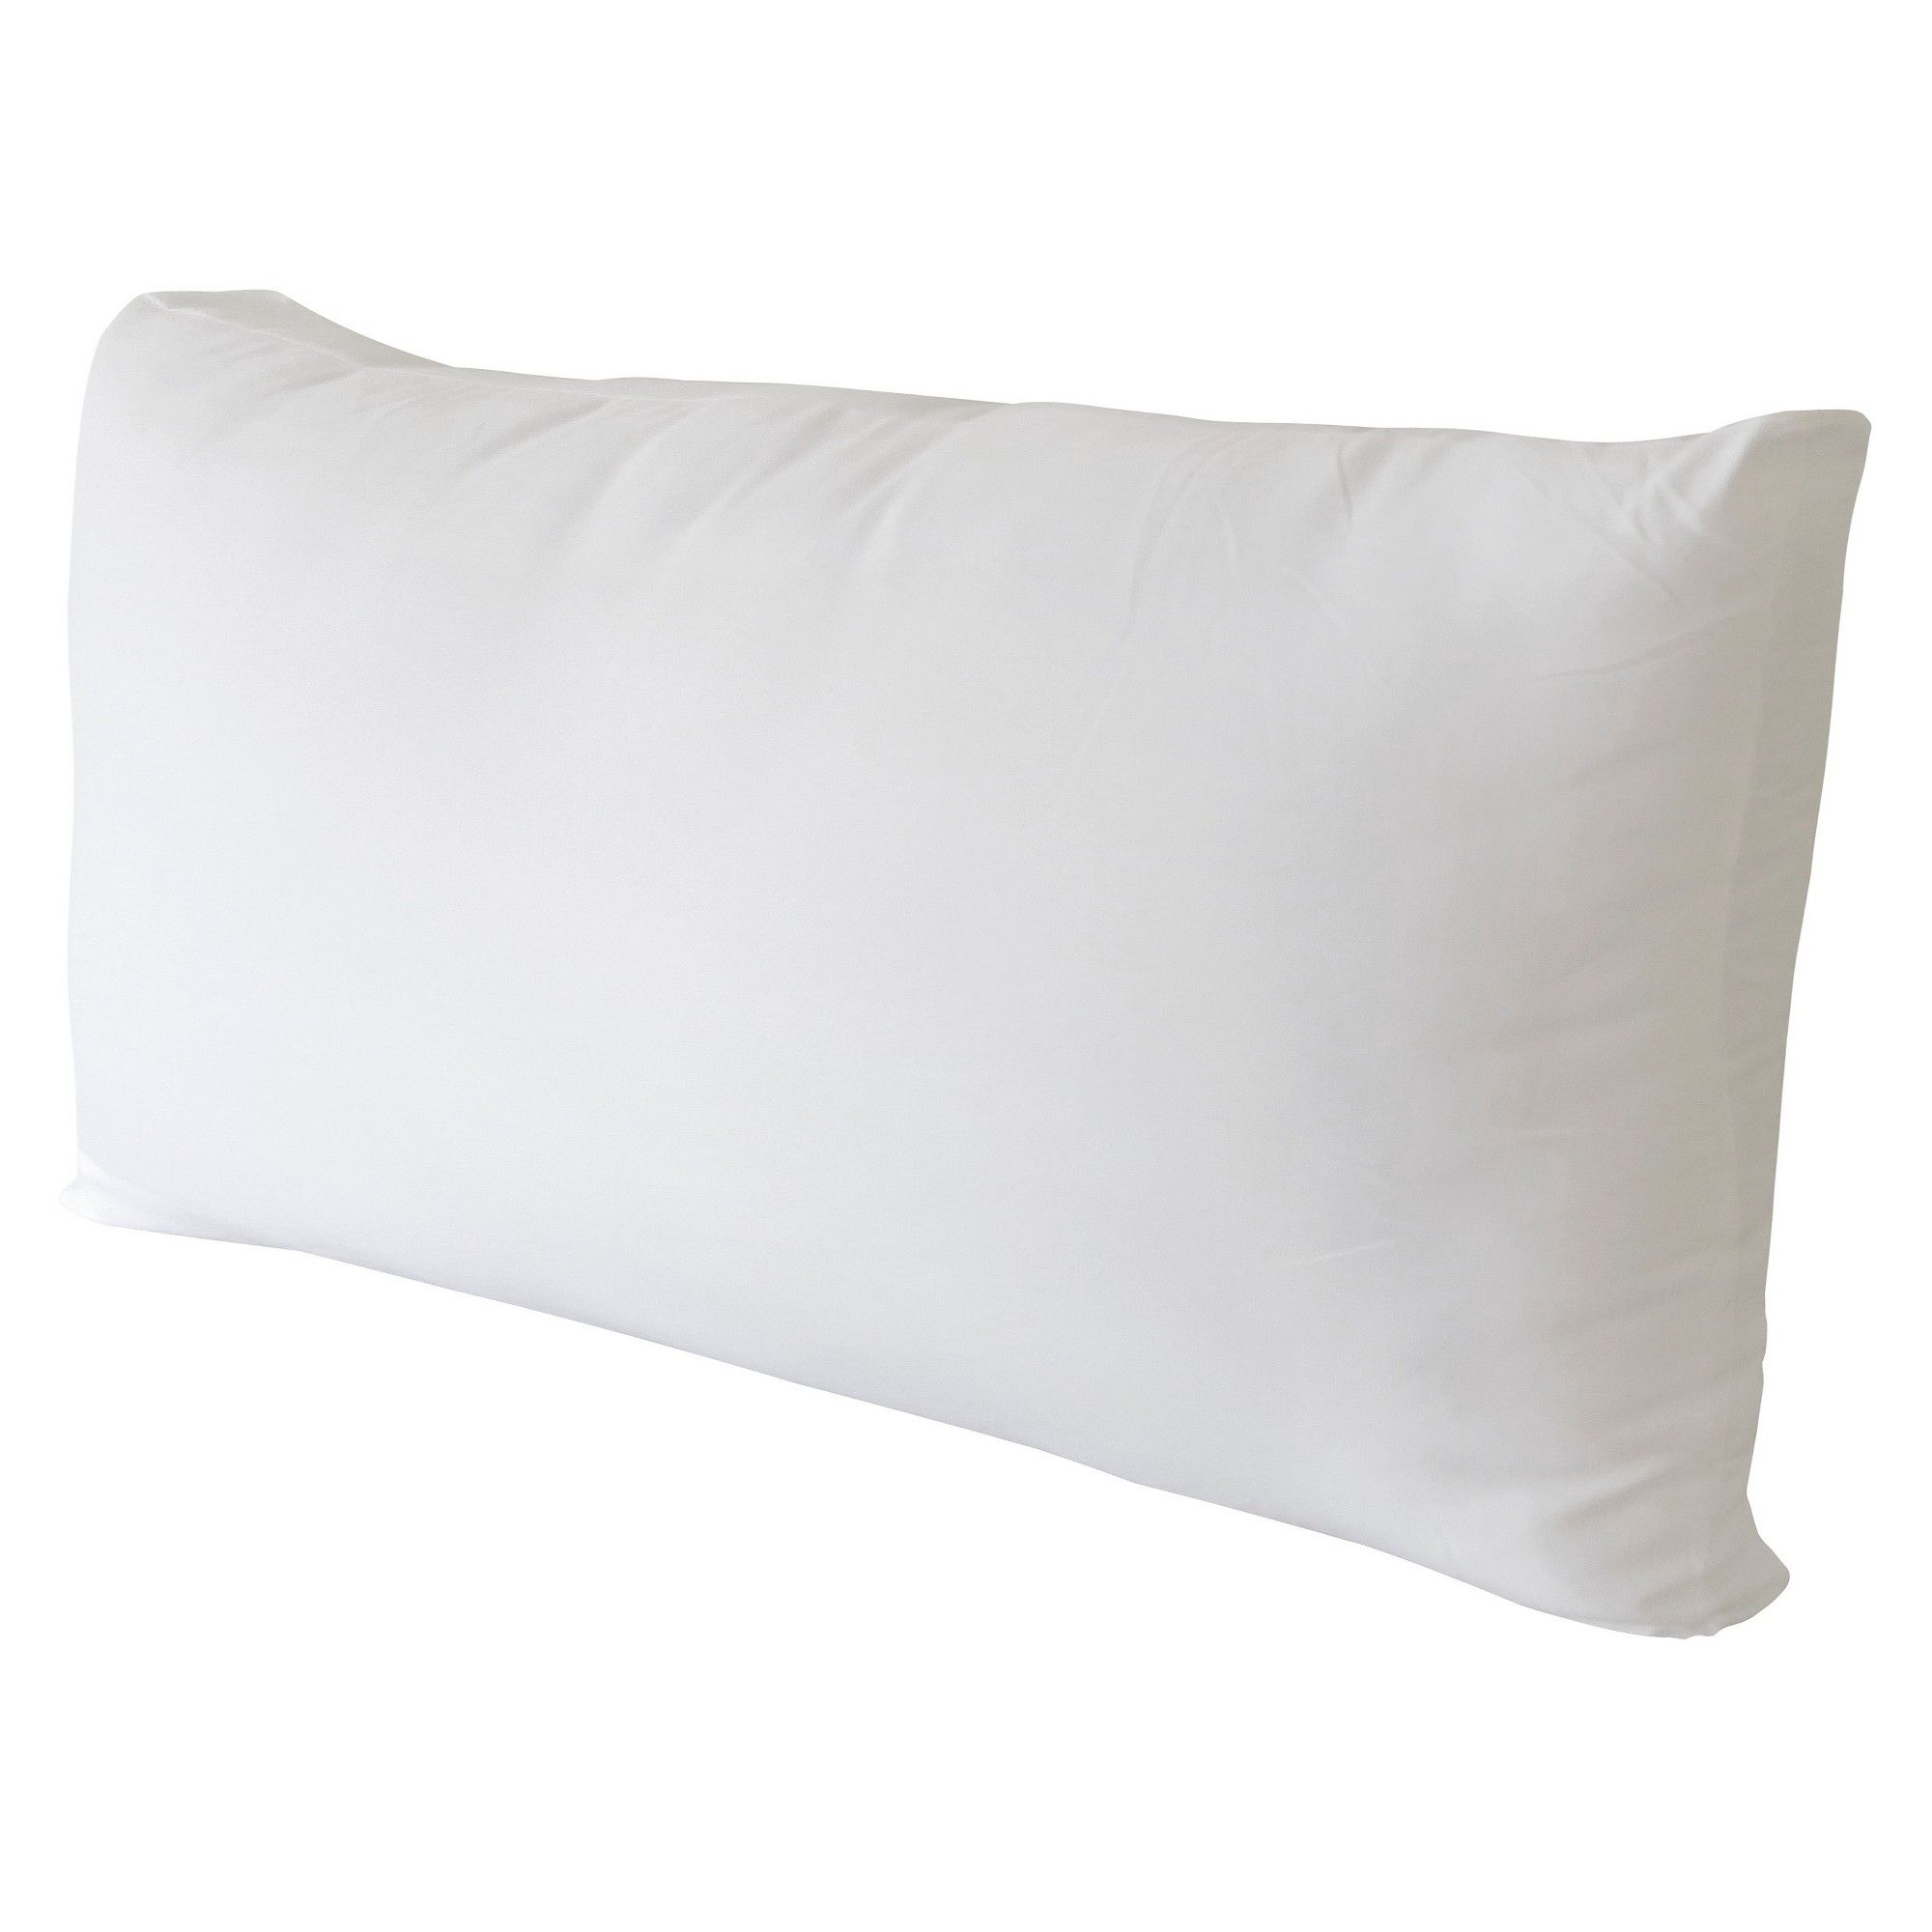 firm belk pillow shadow down klein of online calvin extra density pillows bed gallery only alternative